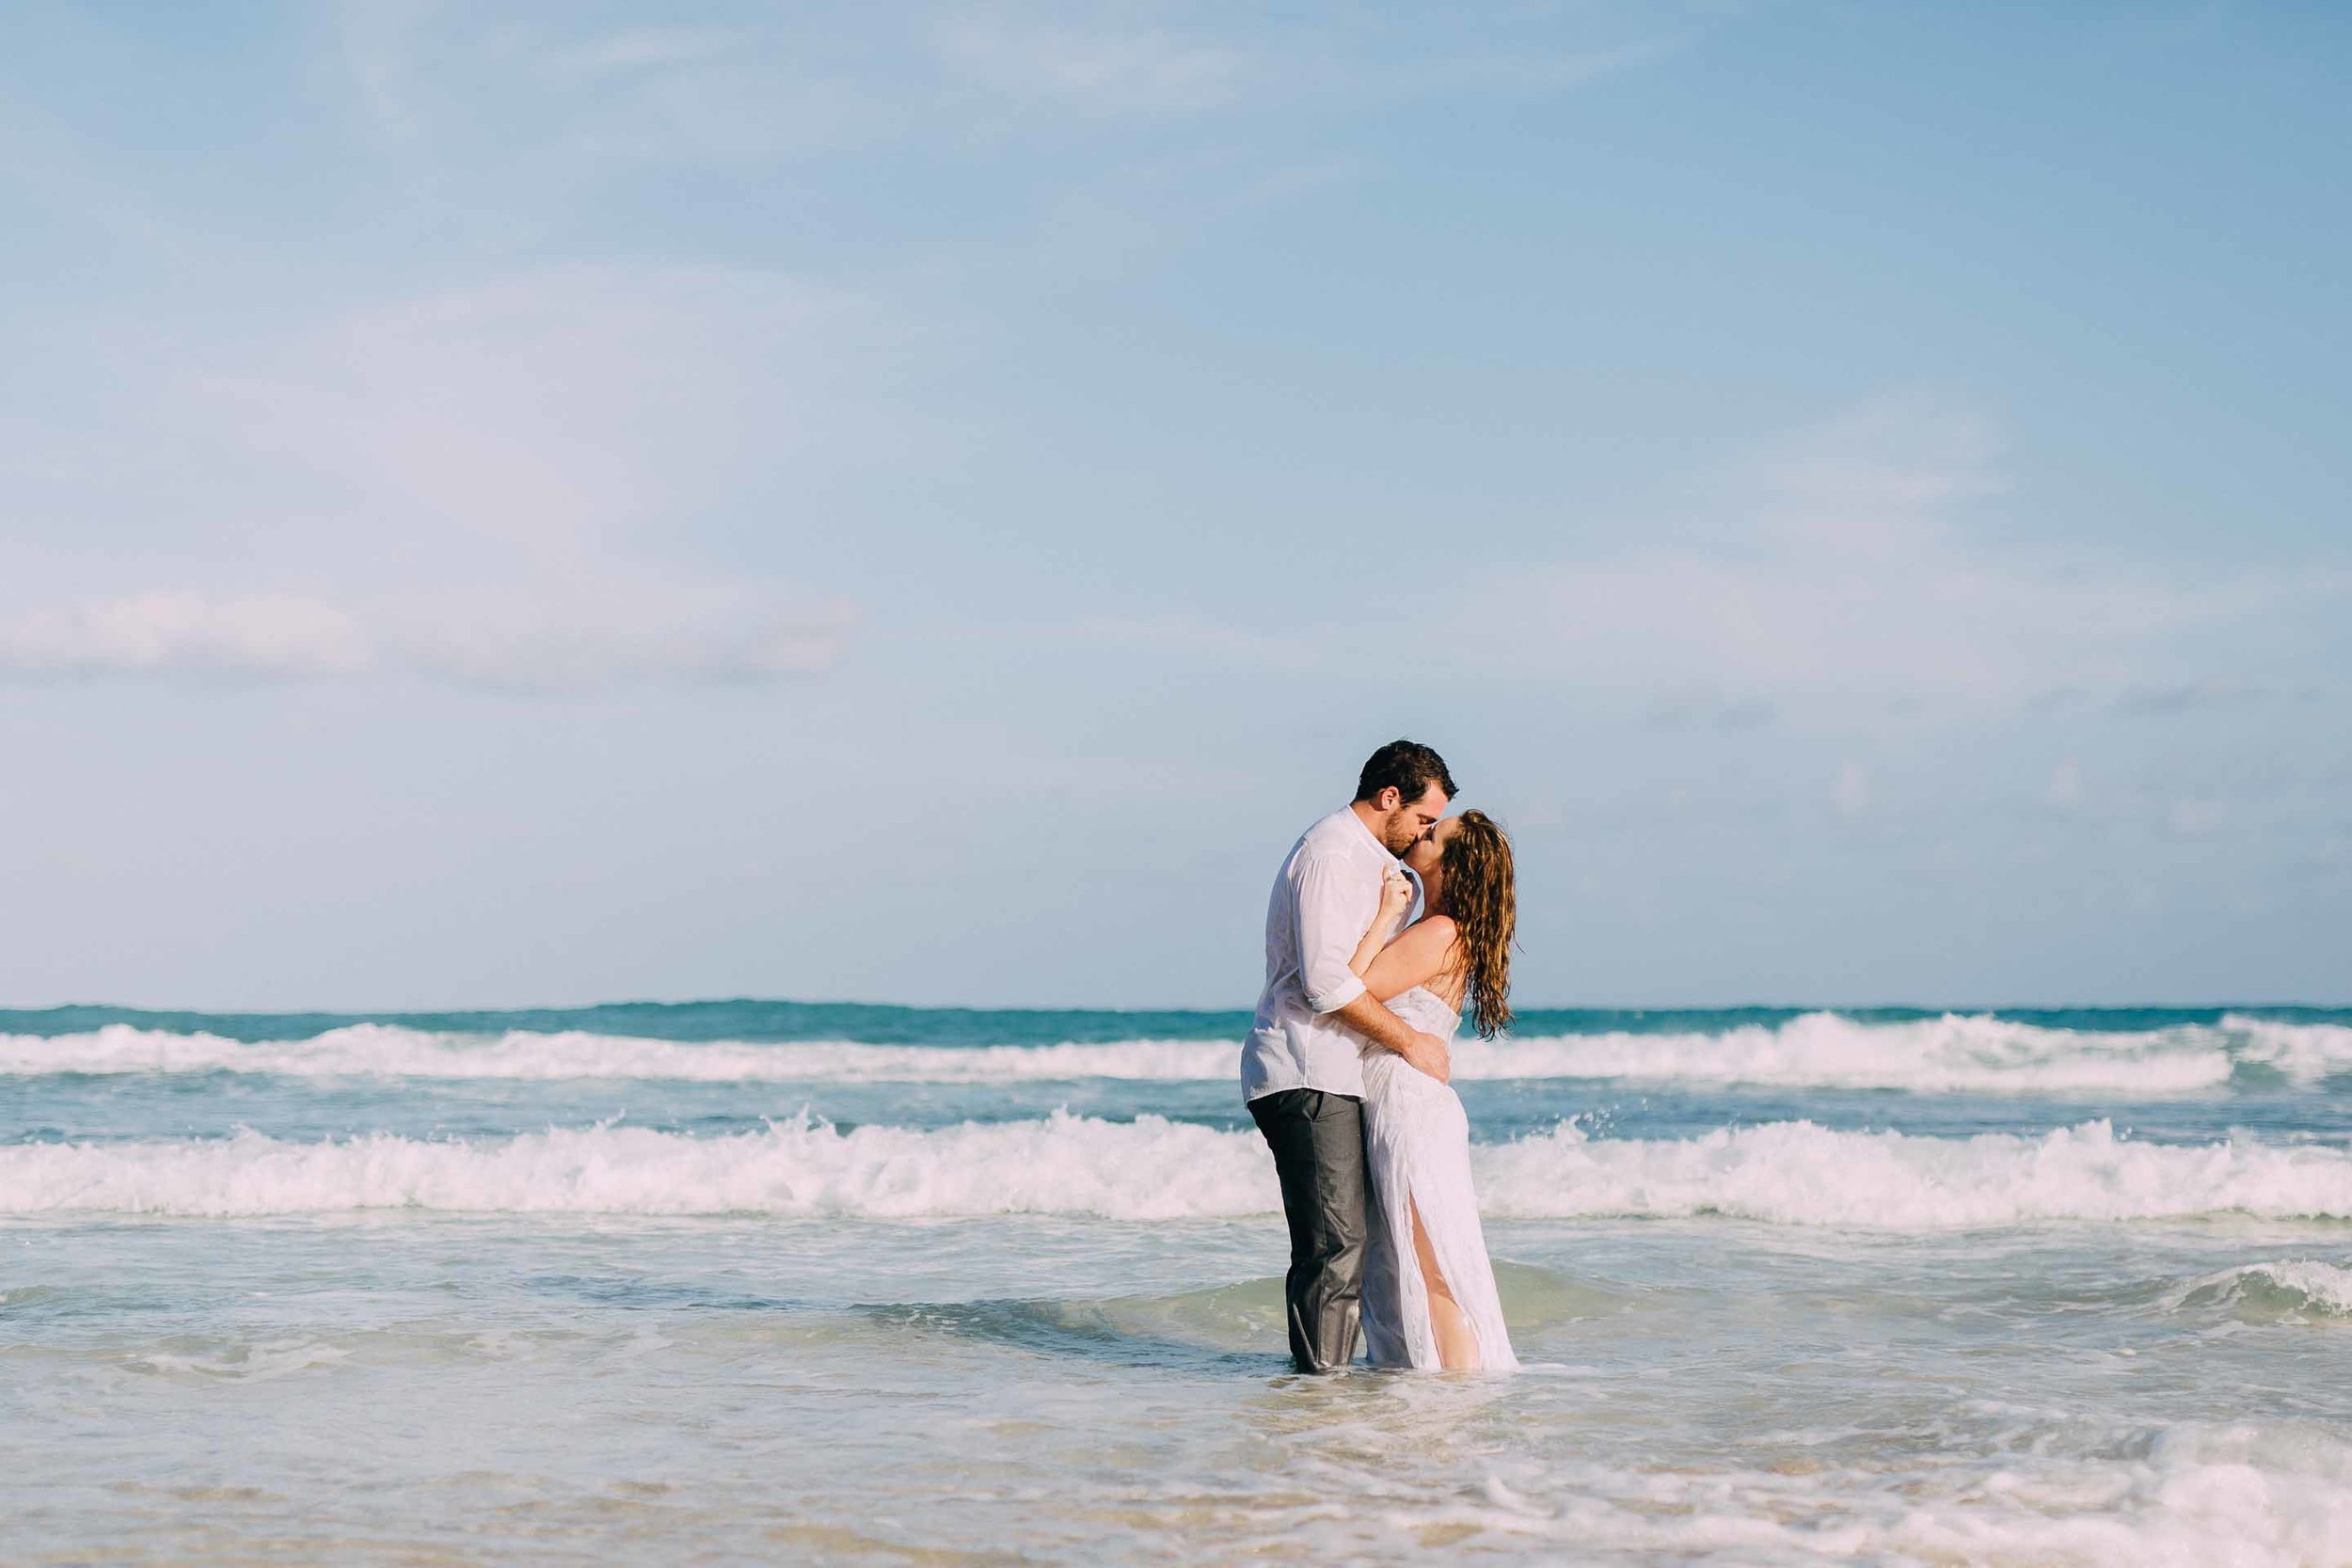 Newlyweds in shallow water, kissing